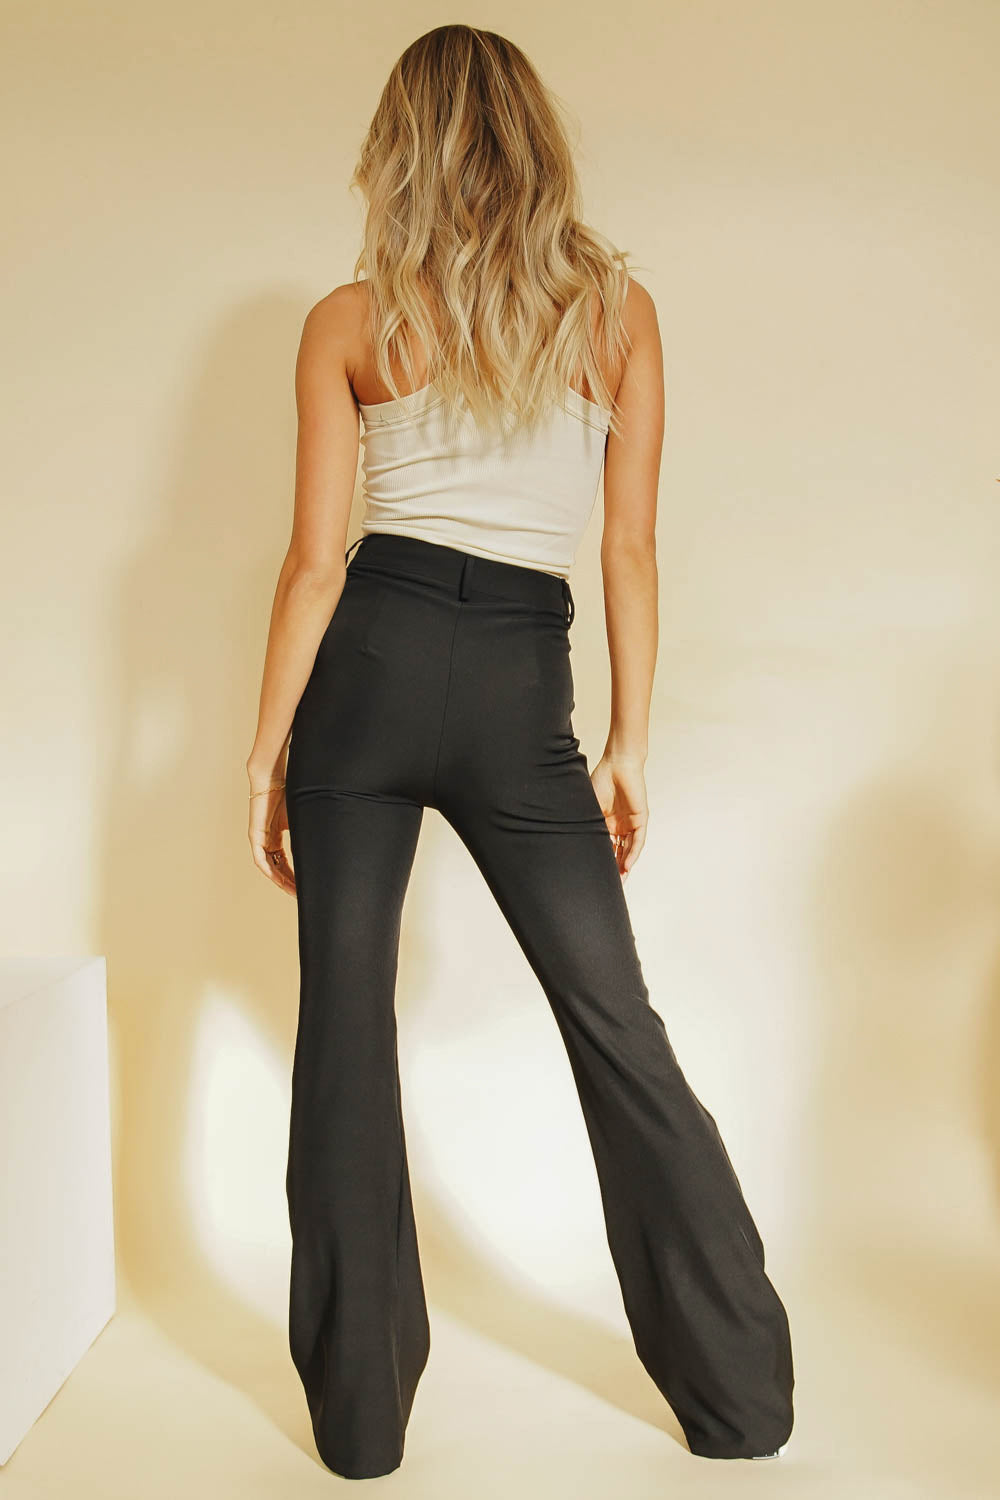 VG To The Bar Pants // Black